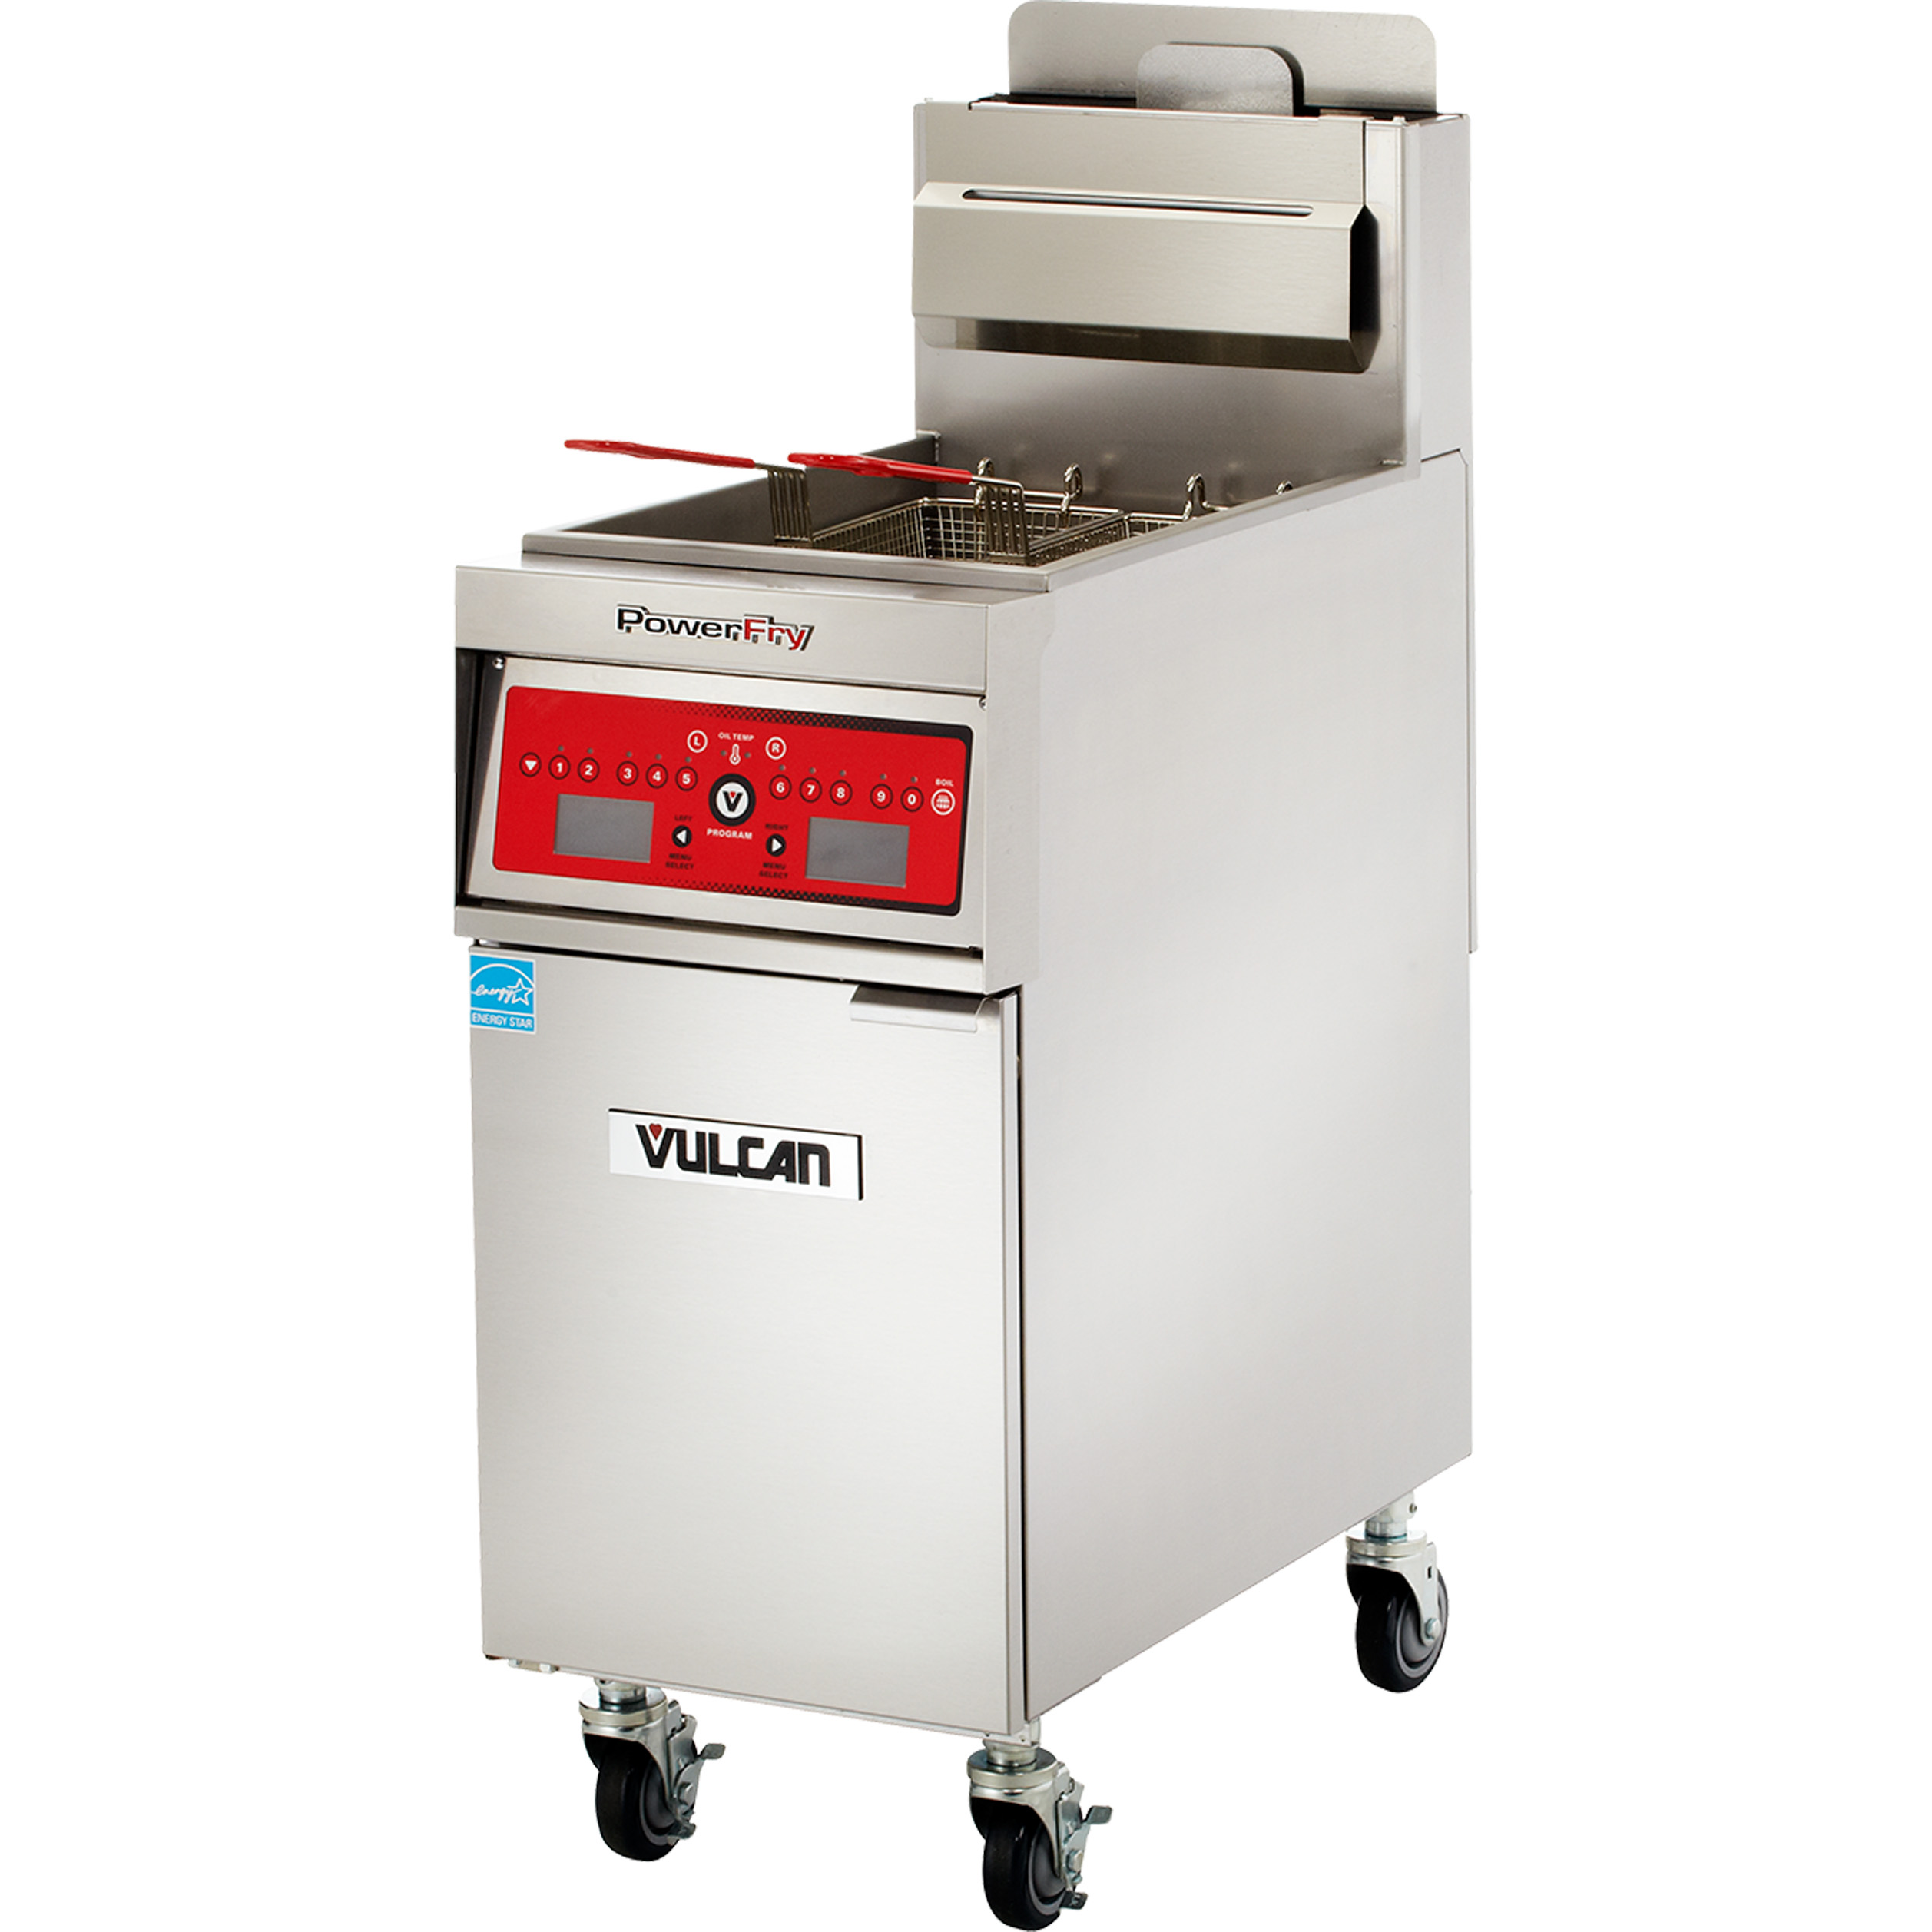 Vulcan 1VK65CF fryer, gas, floor model, full pot